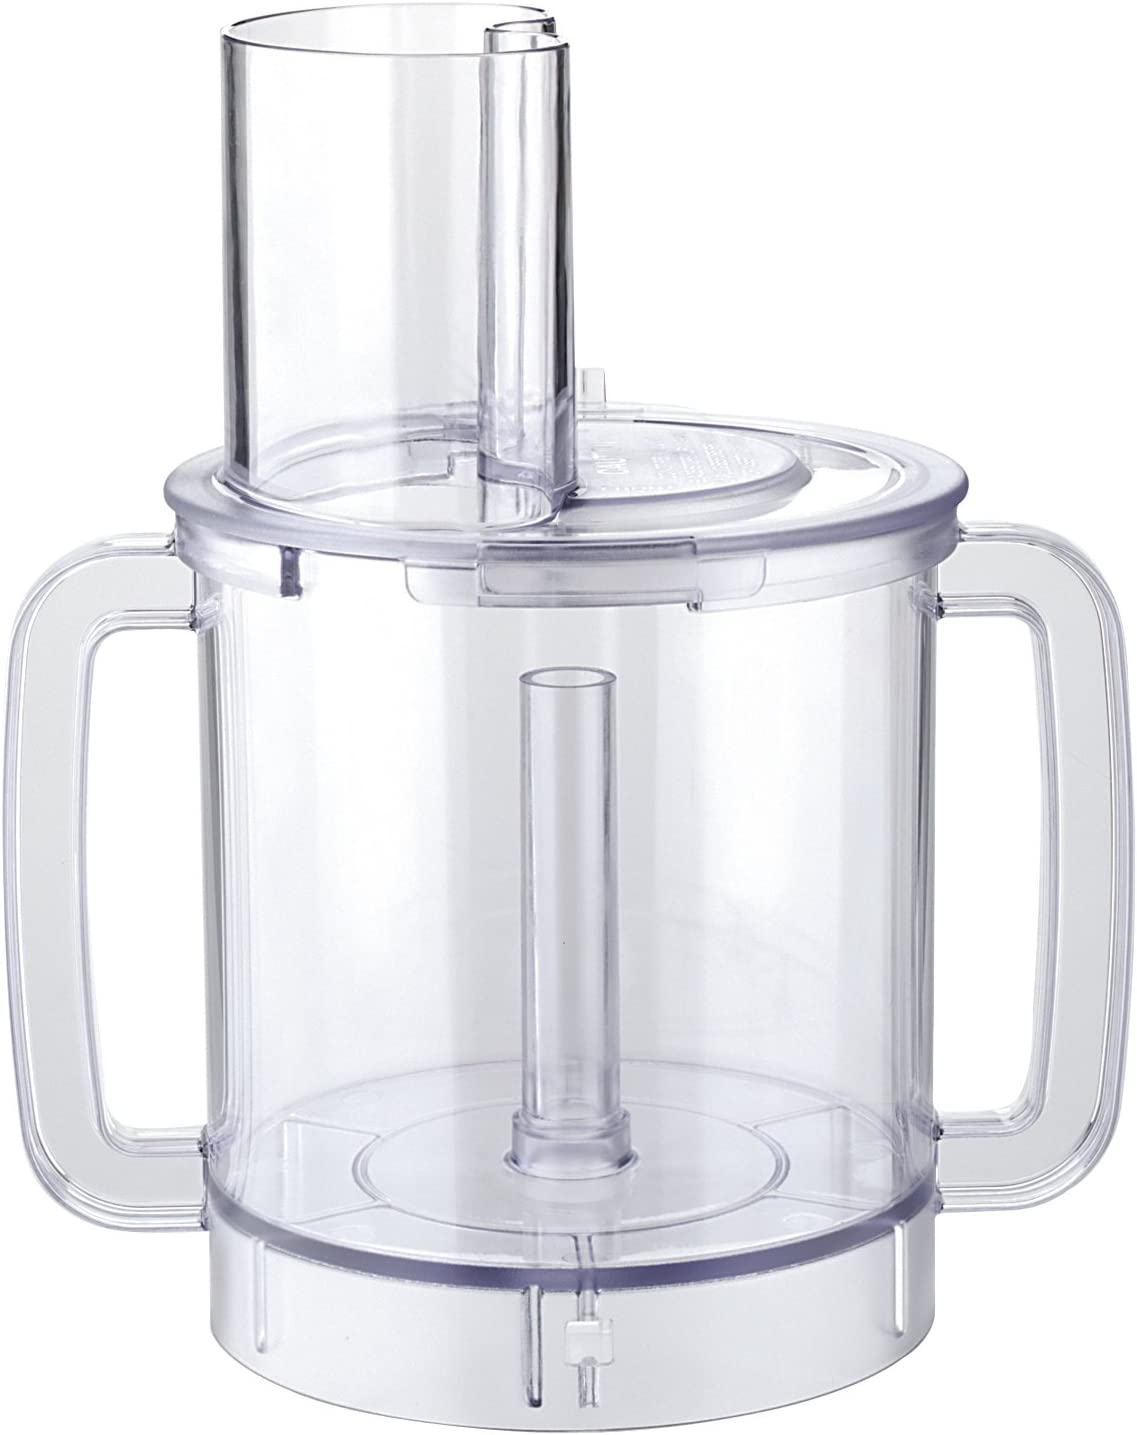 Waring Commercial CAF33 Food Processor Batch Bowl